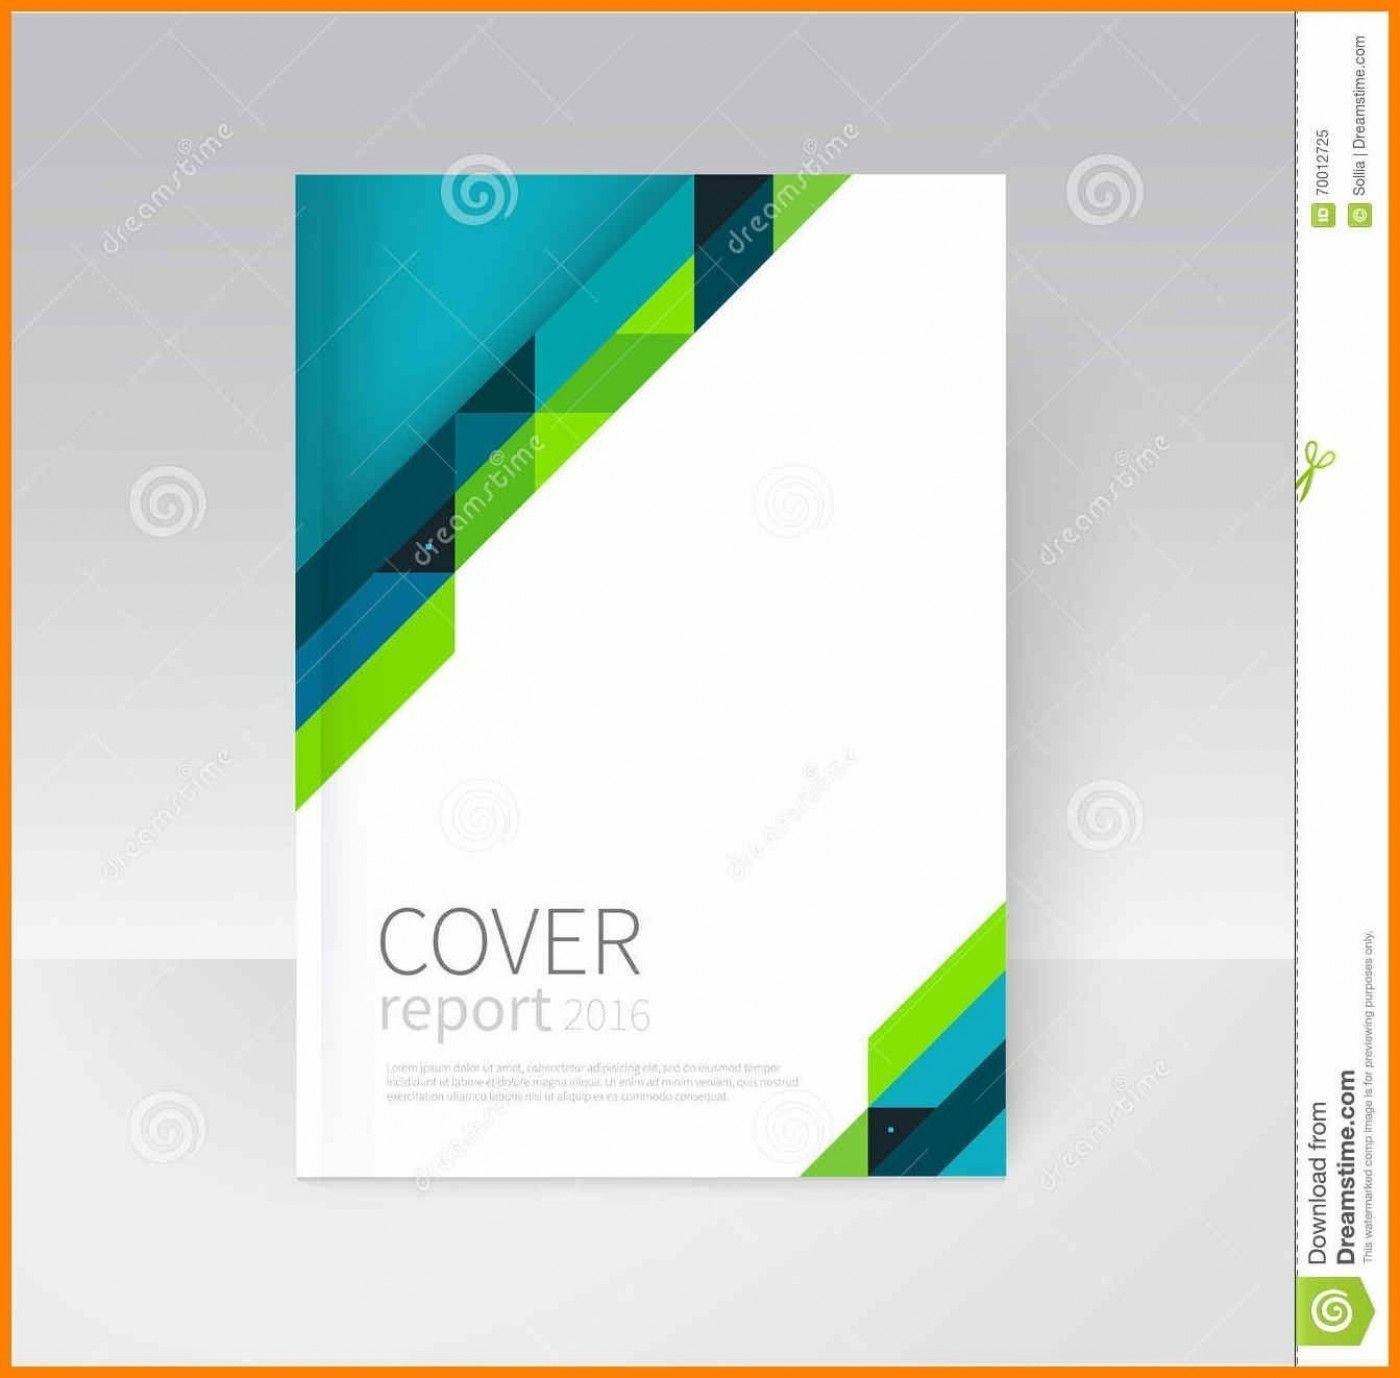 008 Beautiful Free Download Annual Report Cover Design Template Picture  Indesign In WordFull